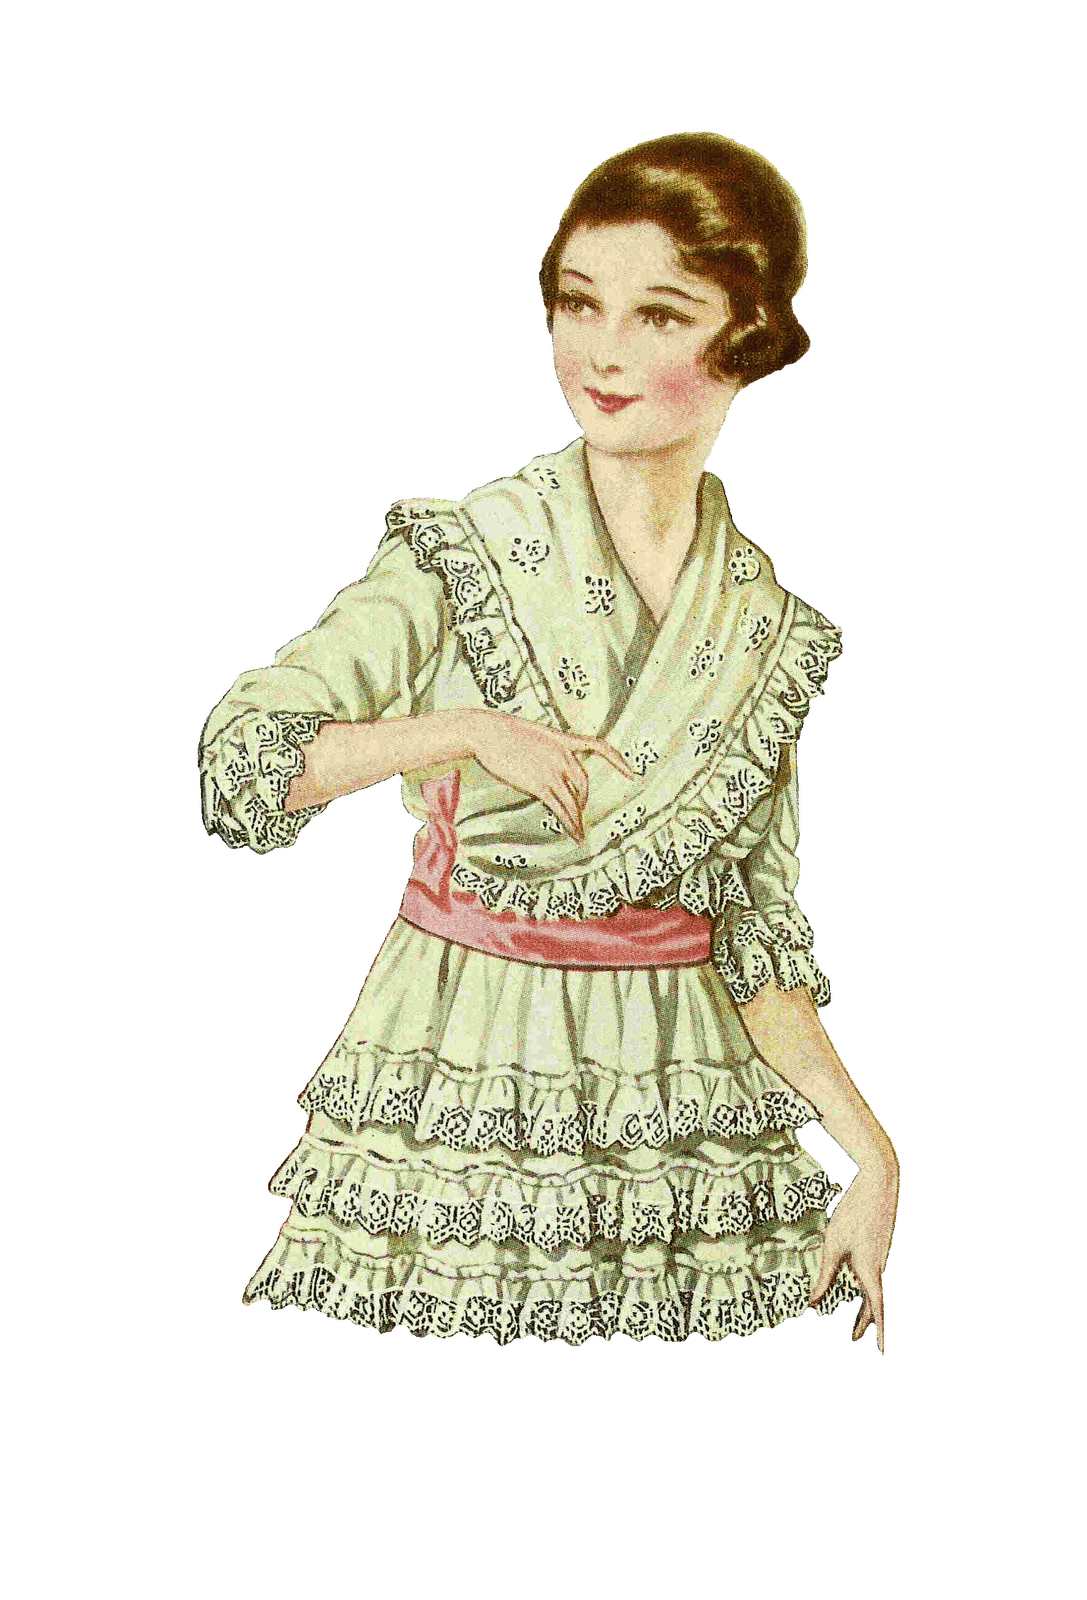 Vintage women png. Woman looking at small